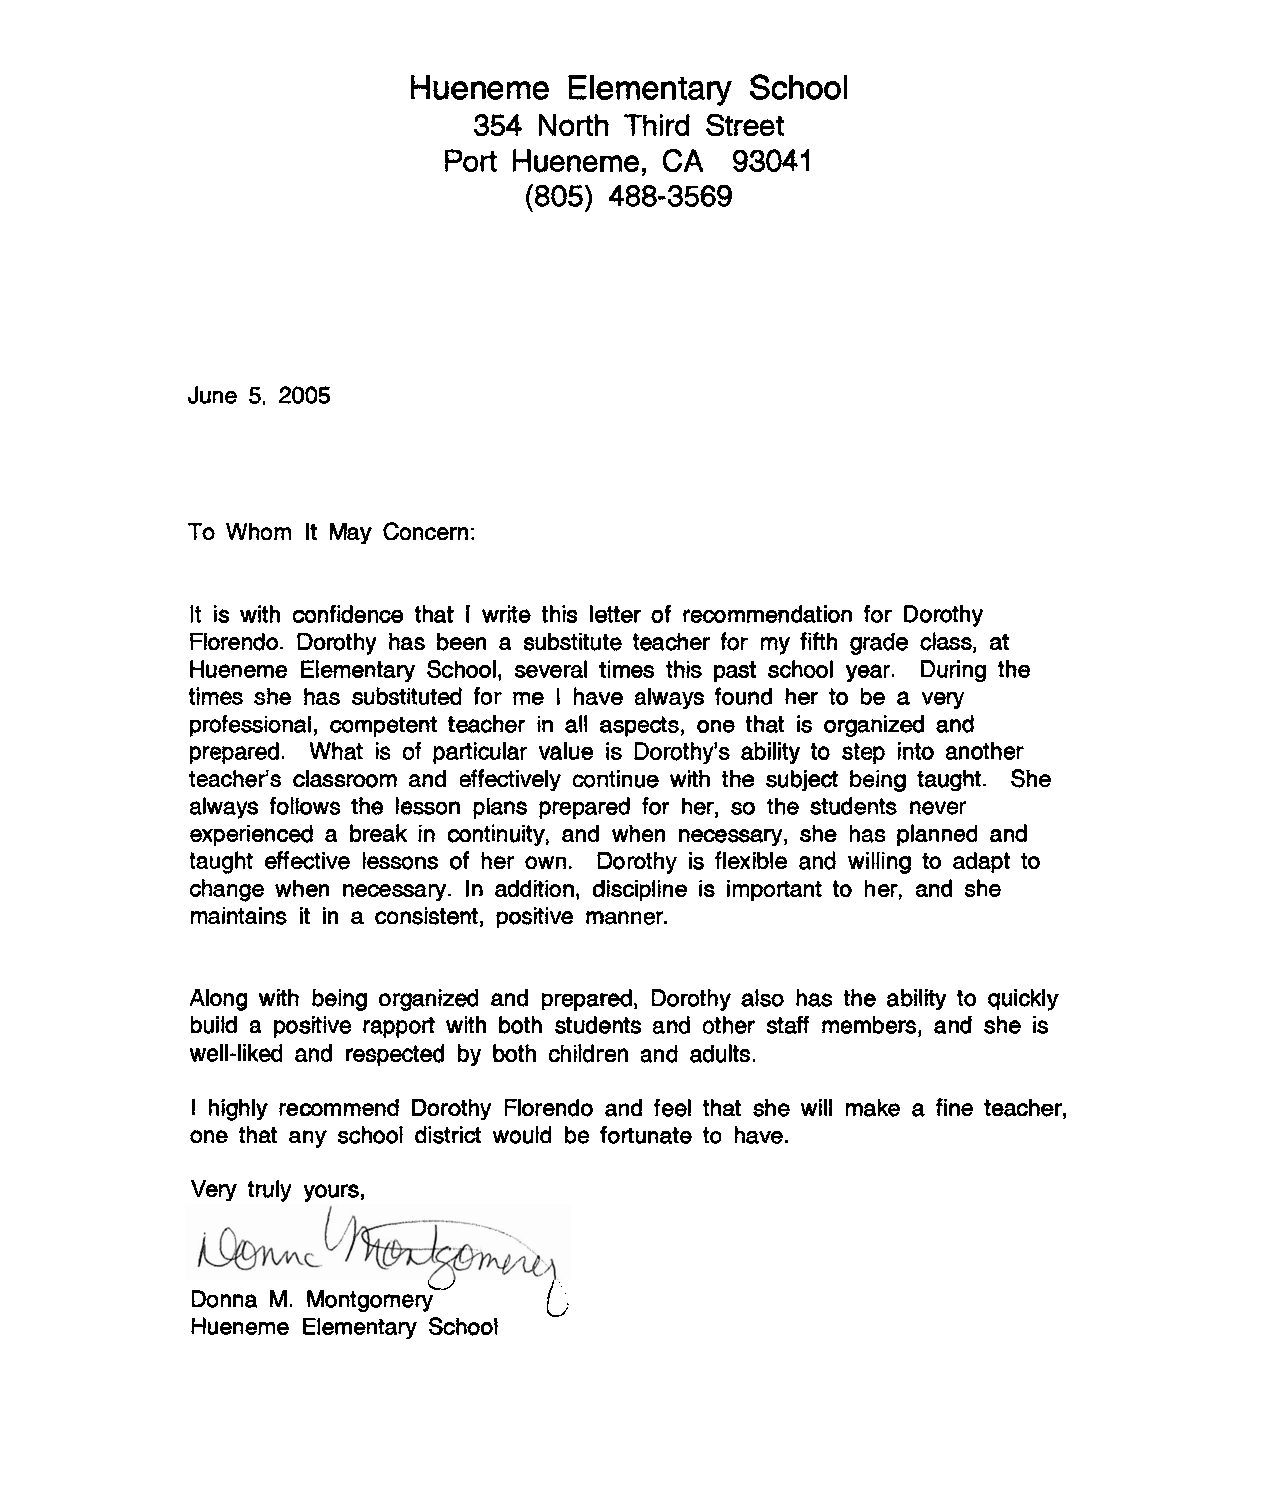 Letter Of Recommendation for Physical therapy School Template - Re Mendation Letter Sample for Teacher From Student